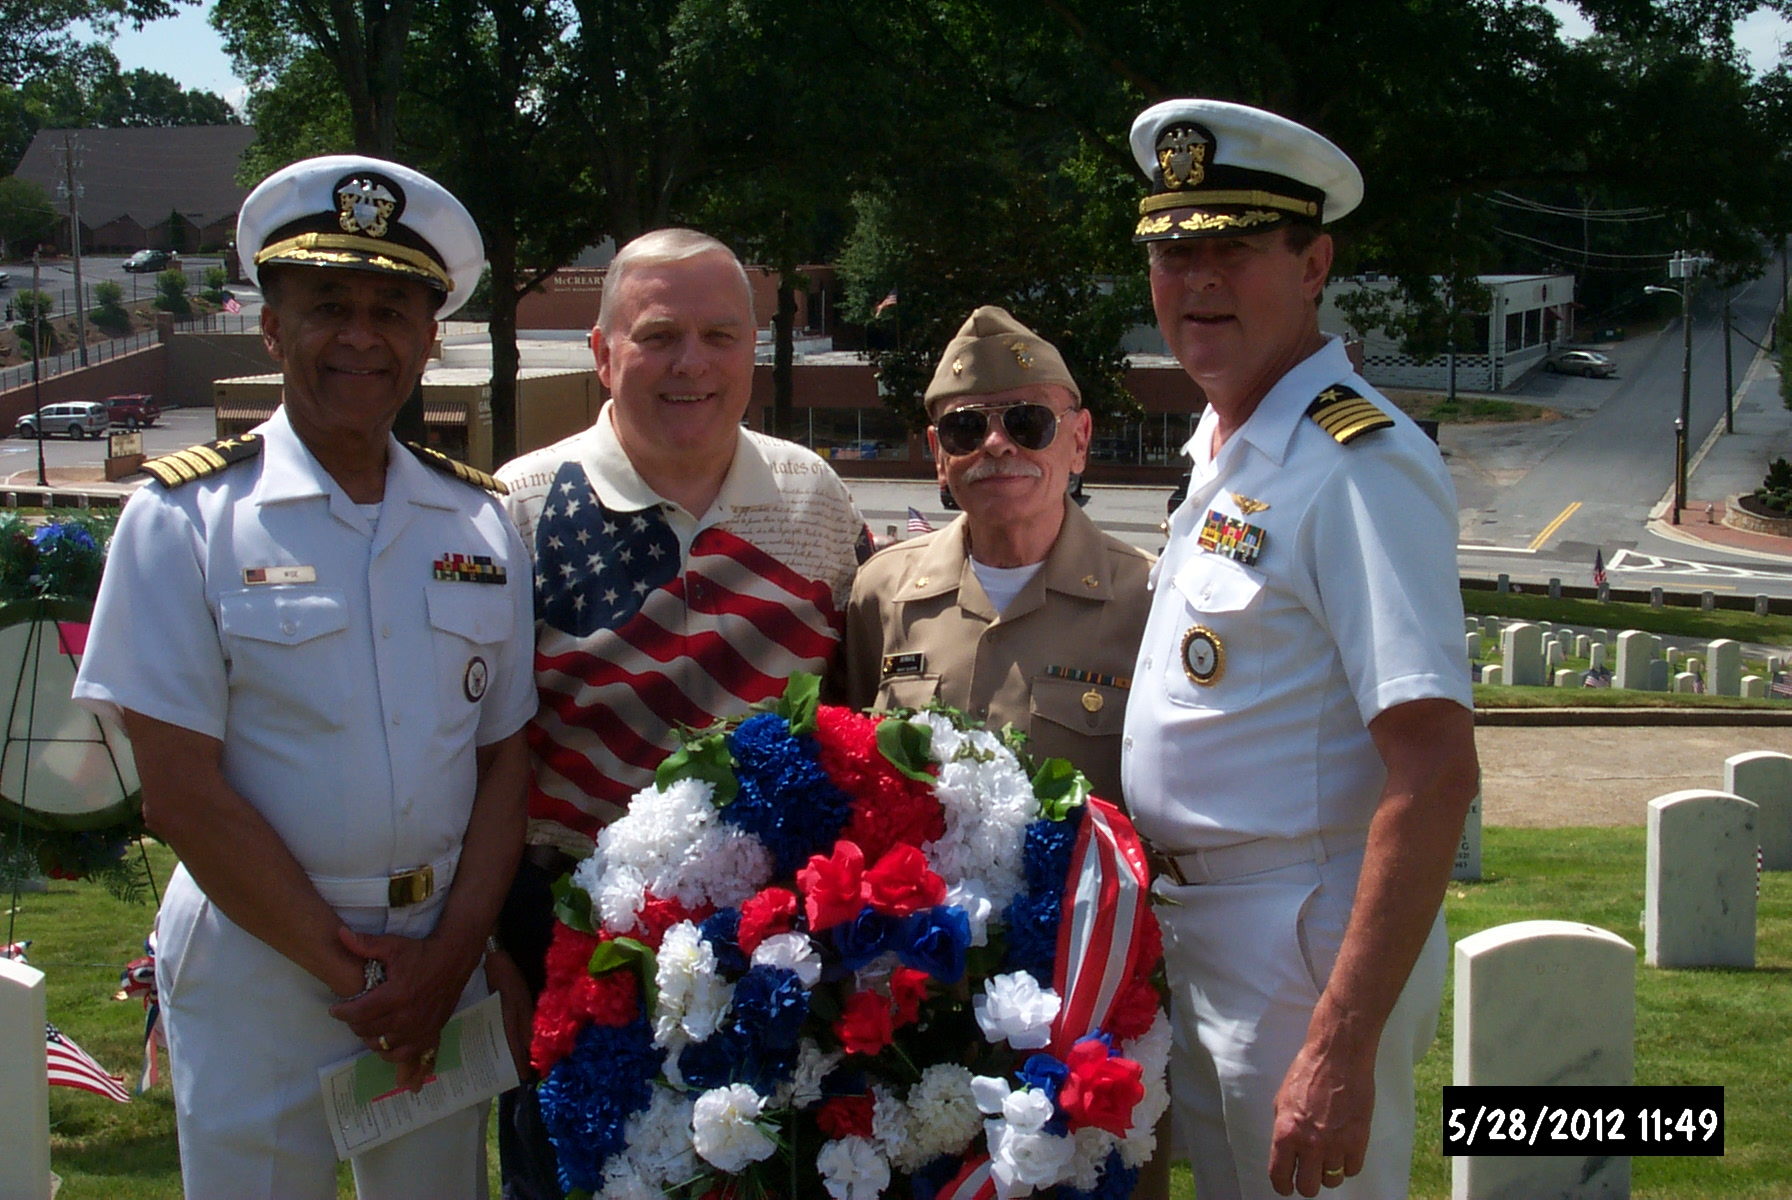 four of the council's members together at the memorial day wreath laying, (L-R) Treasurer Robert Wise, JR, VP Legislative affairs don giles, NSCC Chair Jim serrate, and past president harley jones.